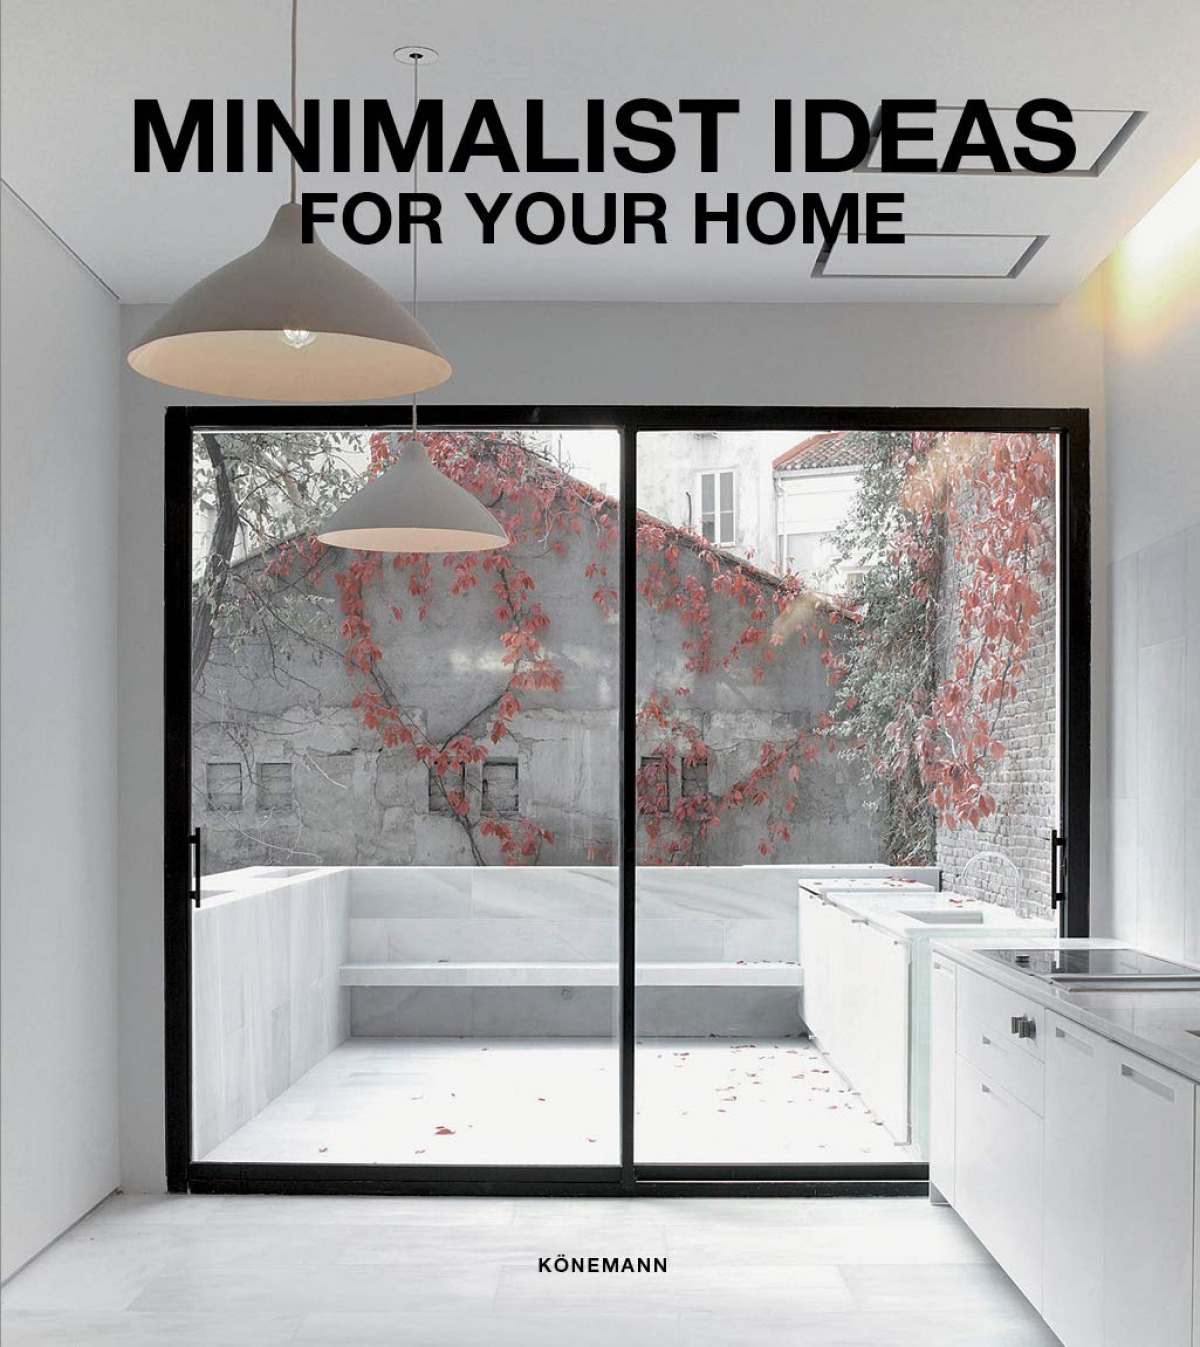 MINIMALIST IDEAS FOR YOUR HOME 9783741923814